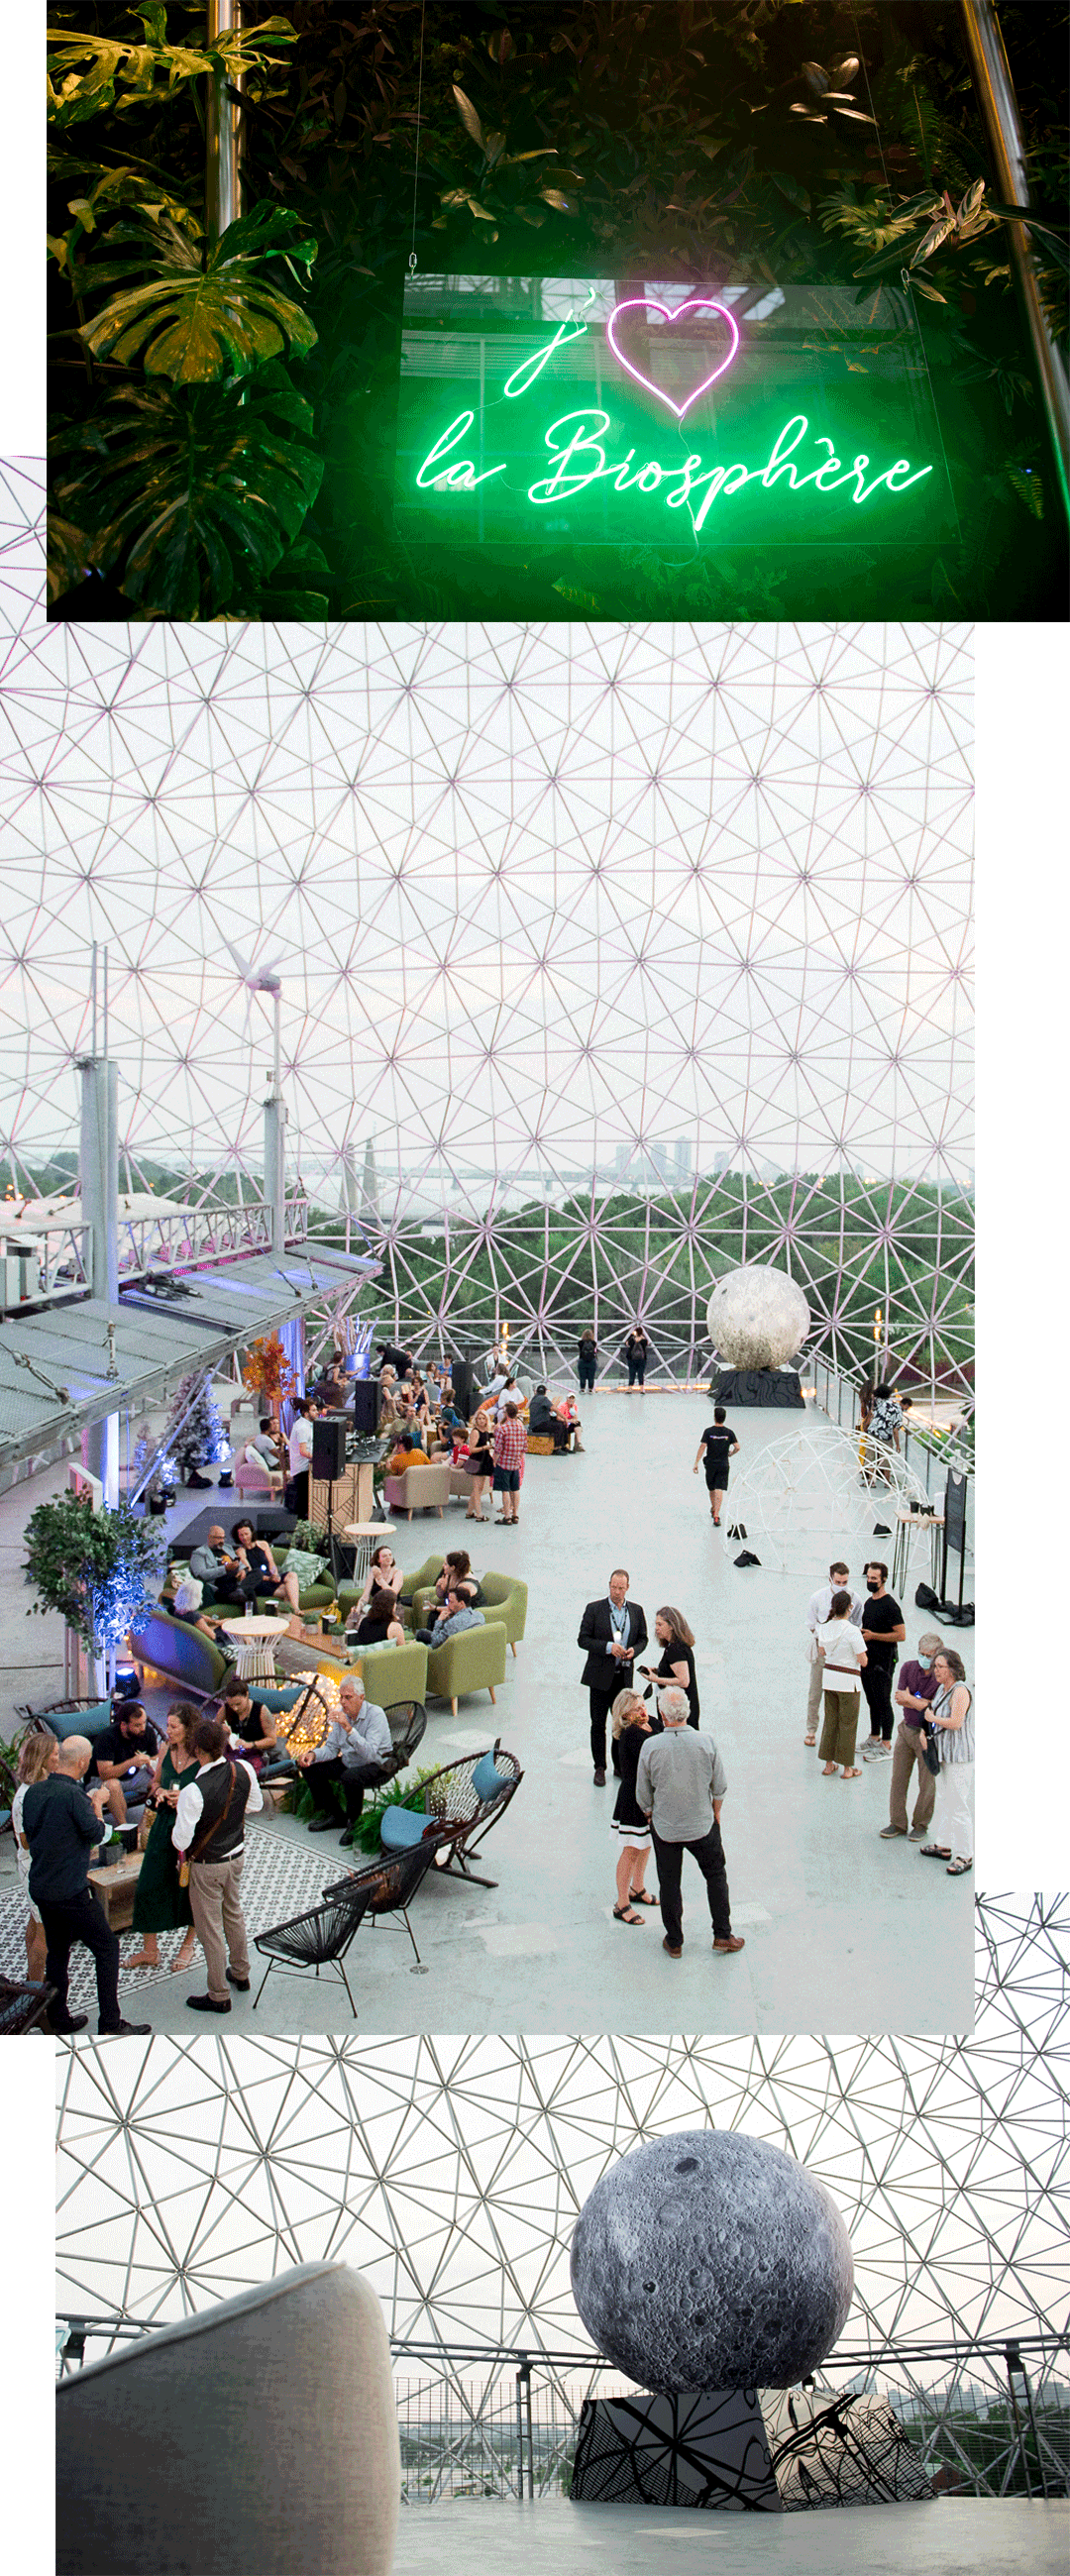 Biosphère, a utopic night at the museum | MASSIVart - Creative Events & Pop-up Production